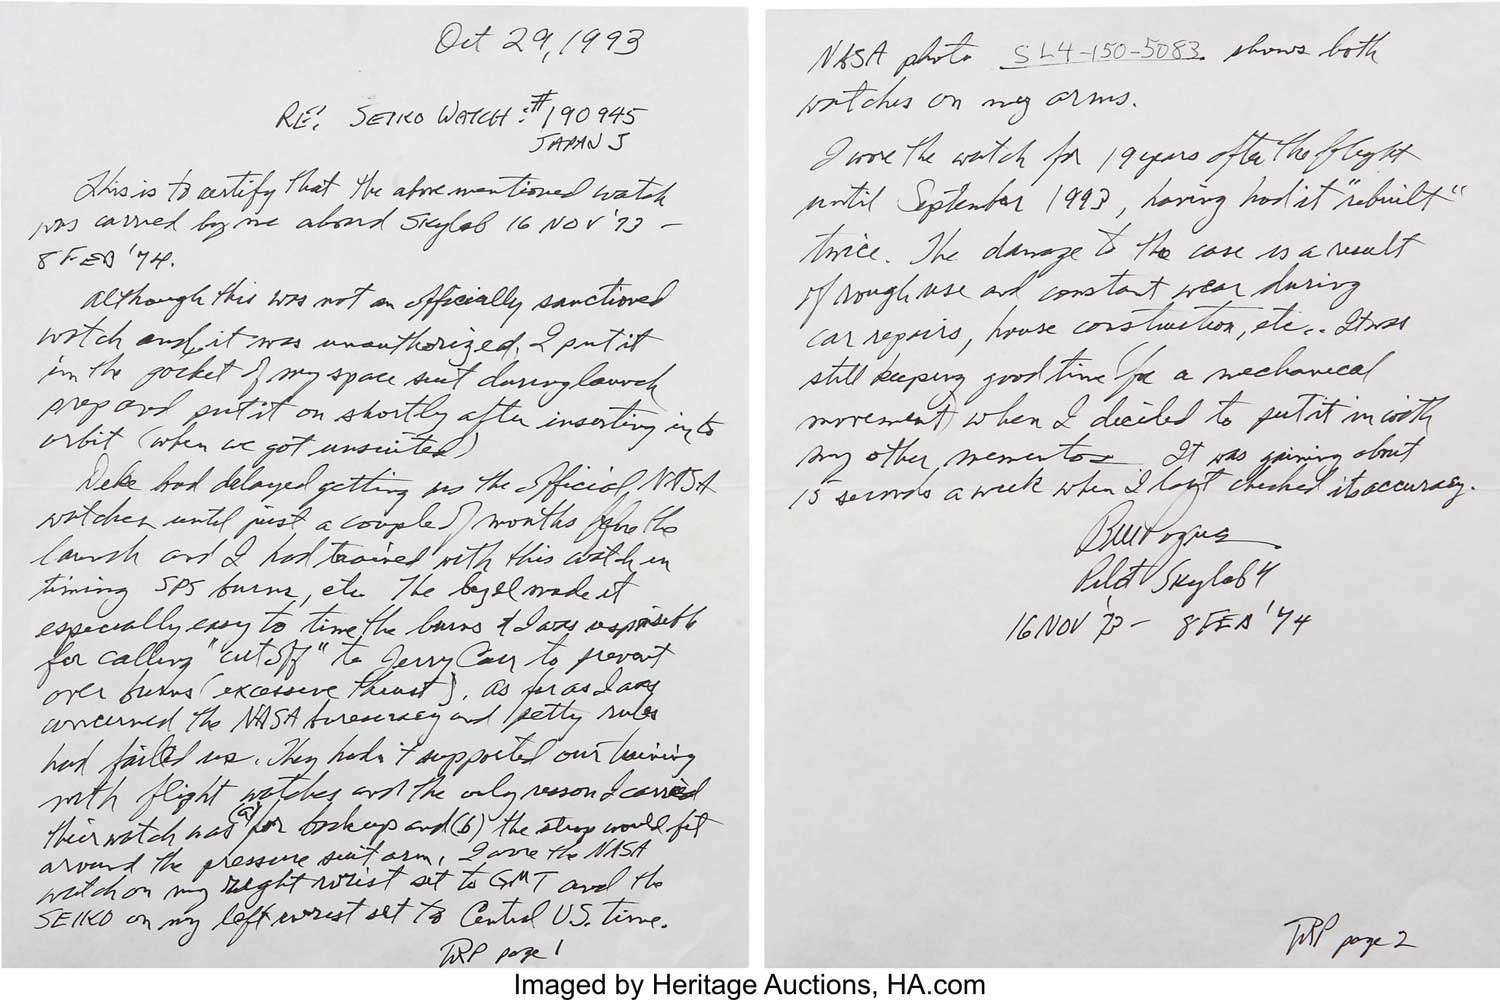 Authentication letter from Colonel Pogue ( Image: Heritage Auction)